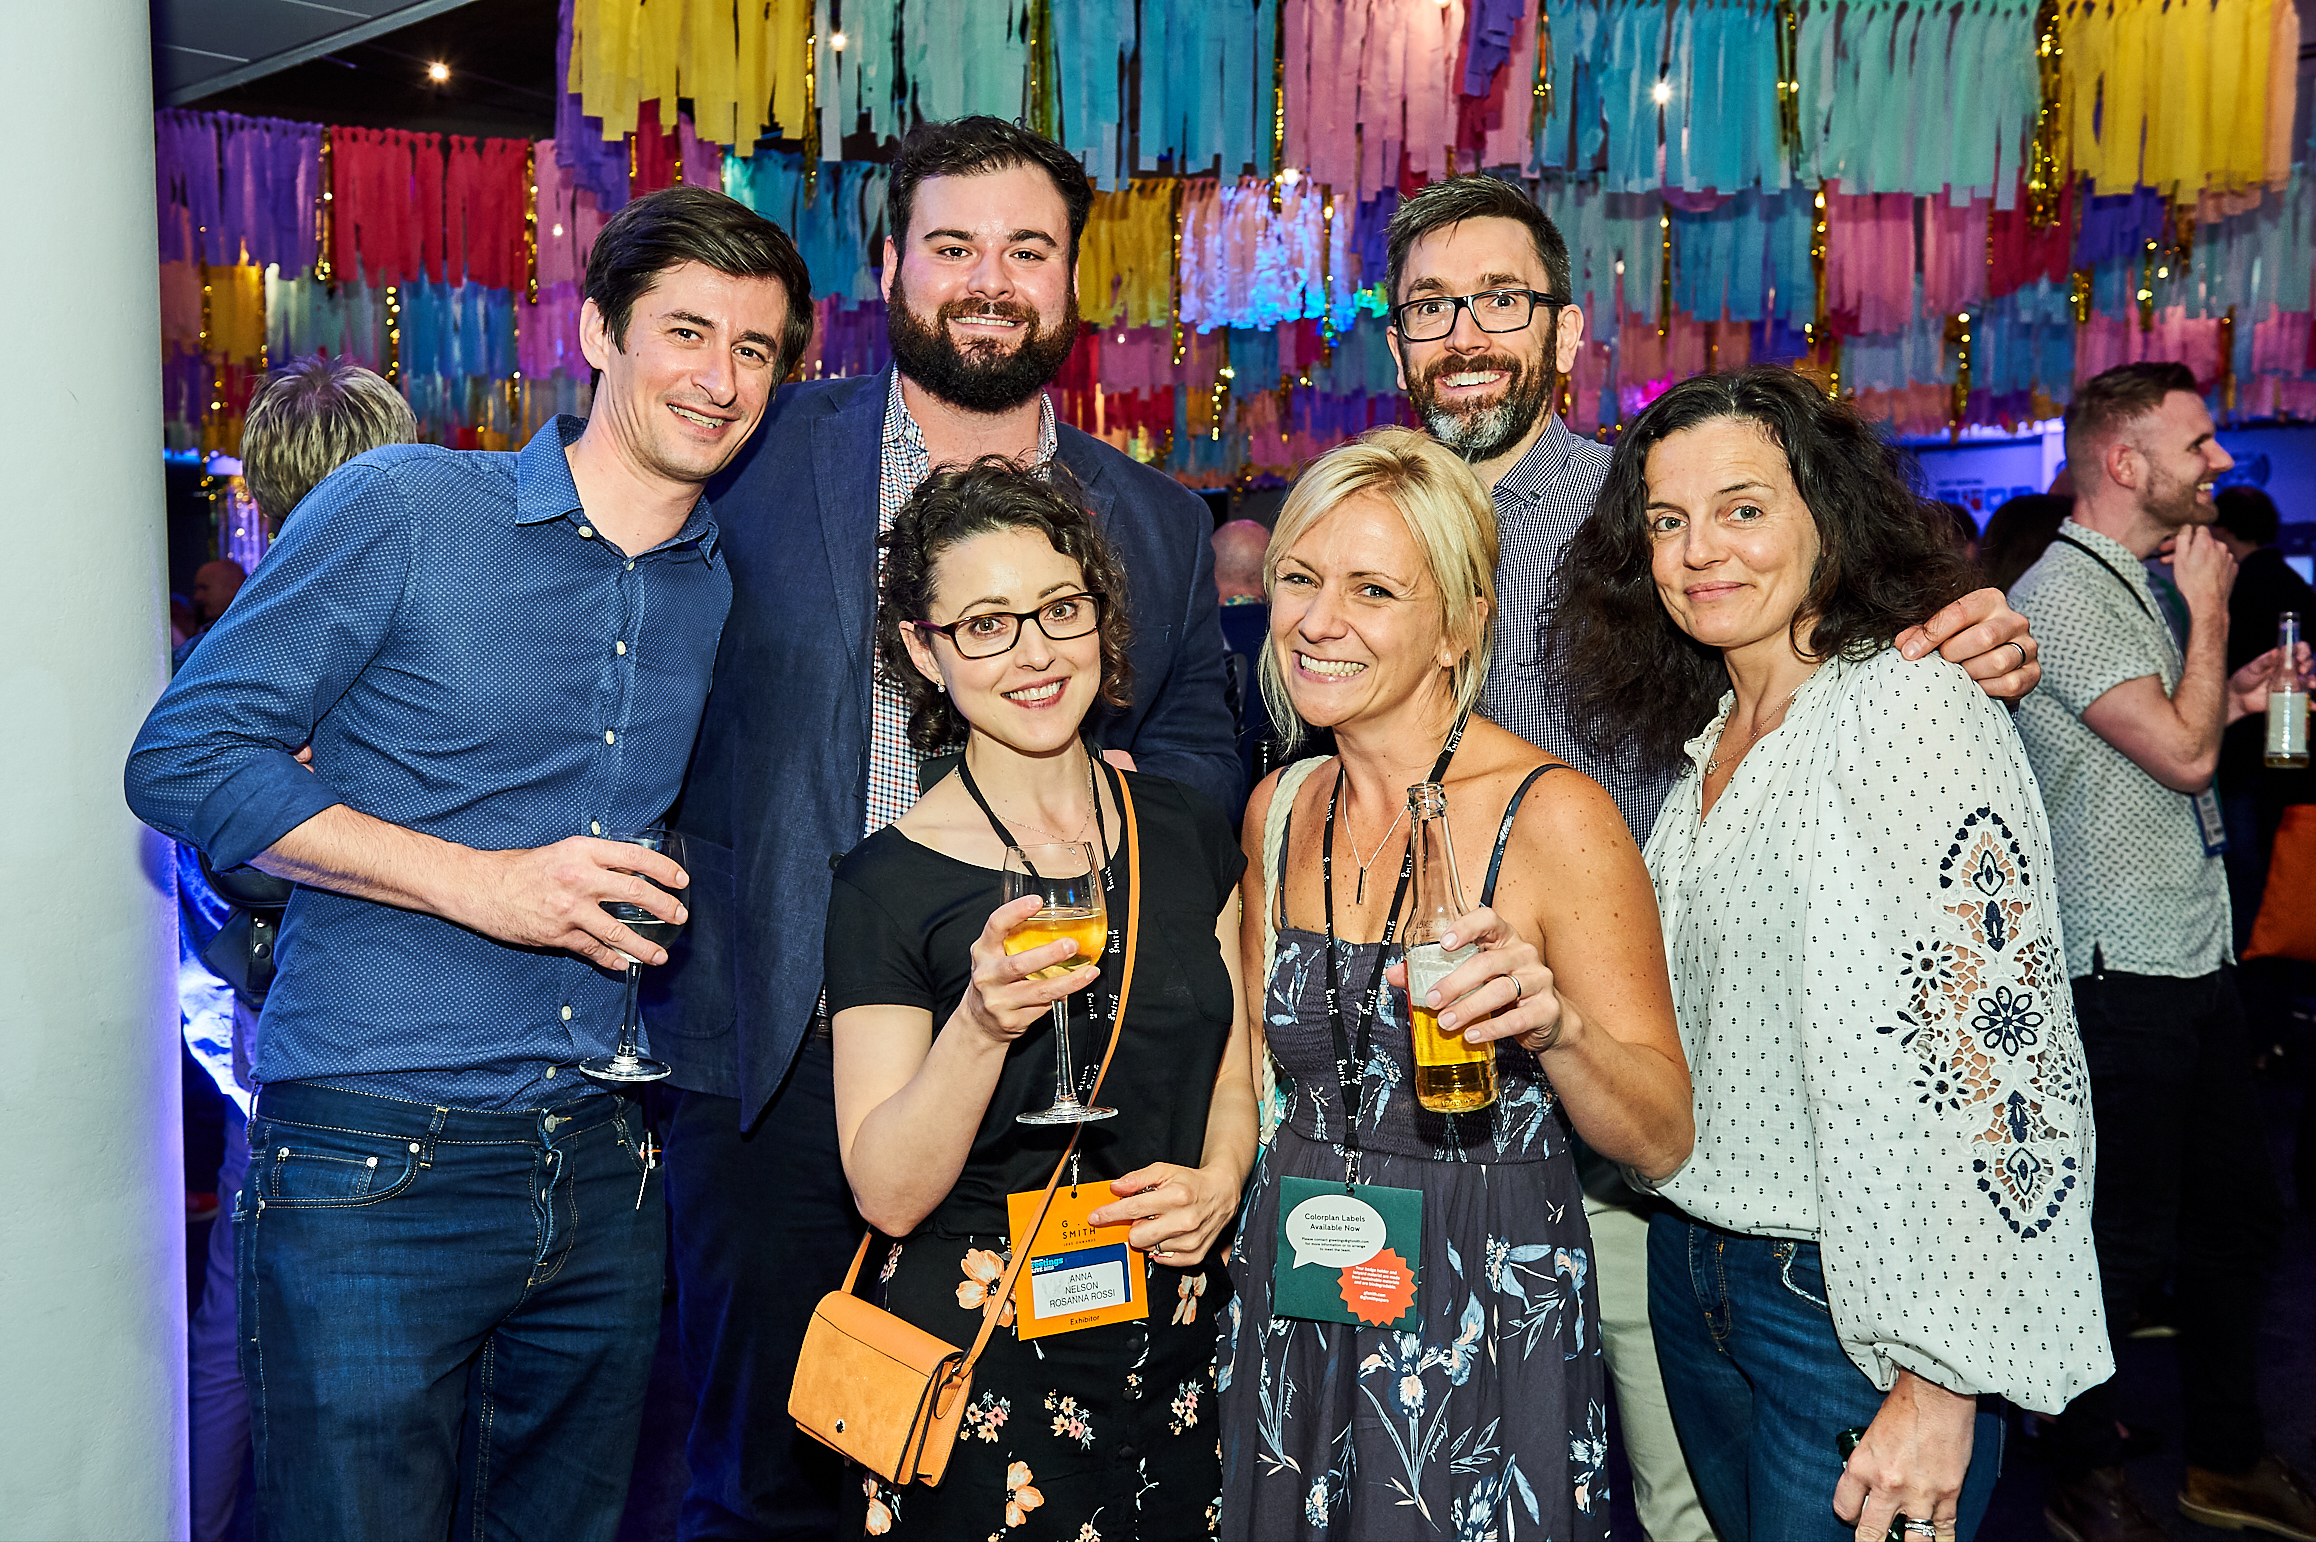 Above: Postmark's Mark and Leona Janson-Smith (far left and far right) with (2nd left-right) James Mace (The Art File), Anna Taylor (Rosanna Rossi), Georgie Francis (White Cotton Cards) and Troy Nelson (Rosanna Rossi) at the Opening Night Party that was co-sponsored by Tache and Louise Tiler Designs.